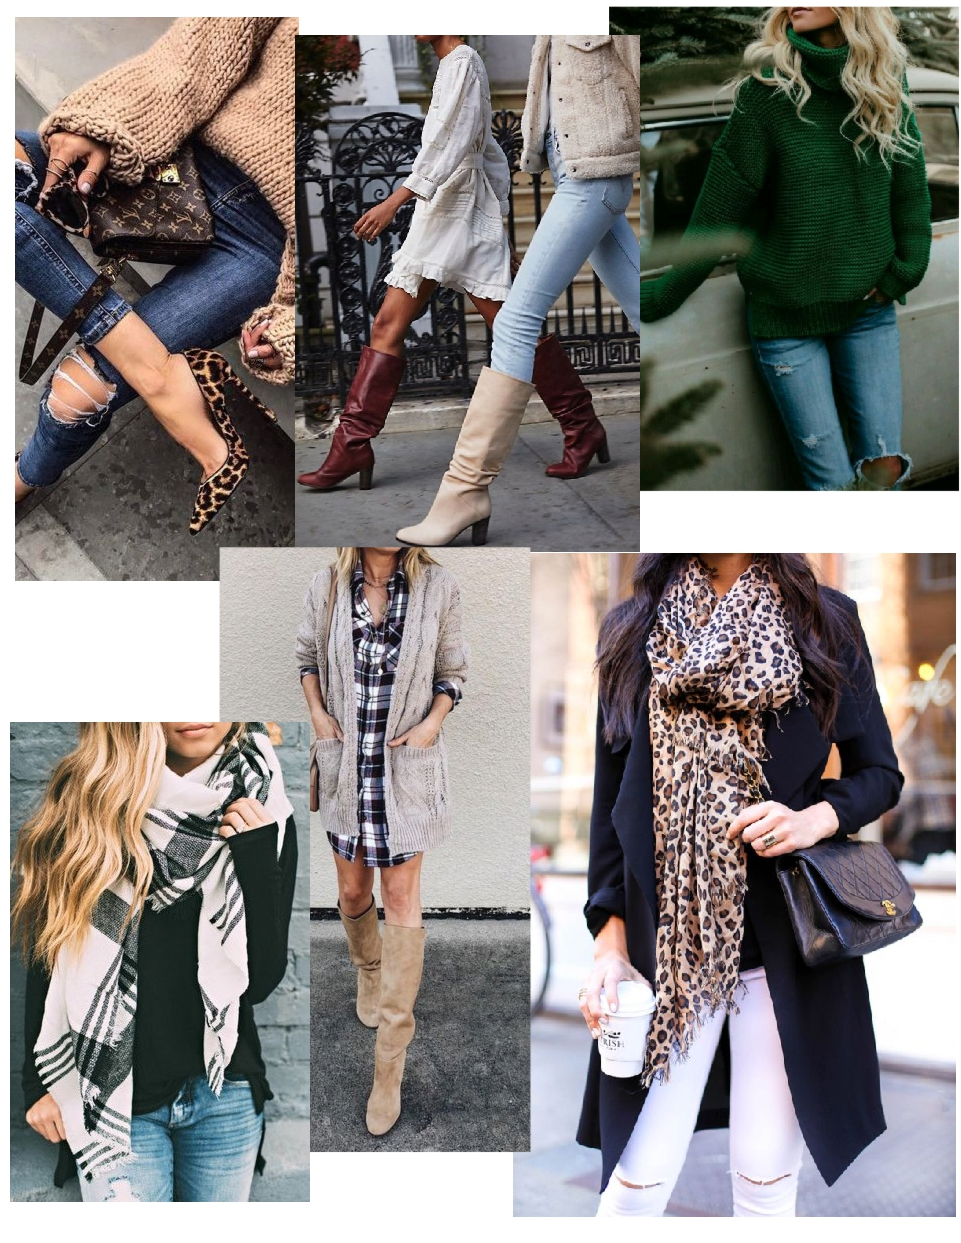 score fall's biggest trends on sale, huge fall, Shopbop sale, leopard print, jewel tones, plaid, slouchy boots